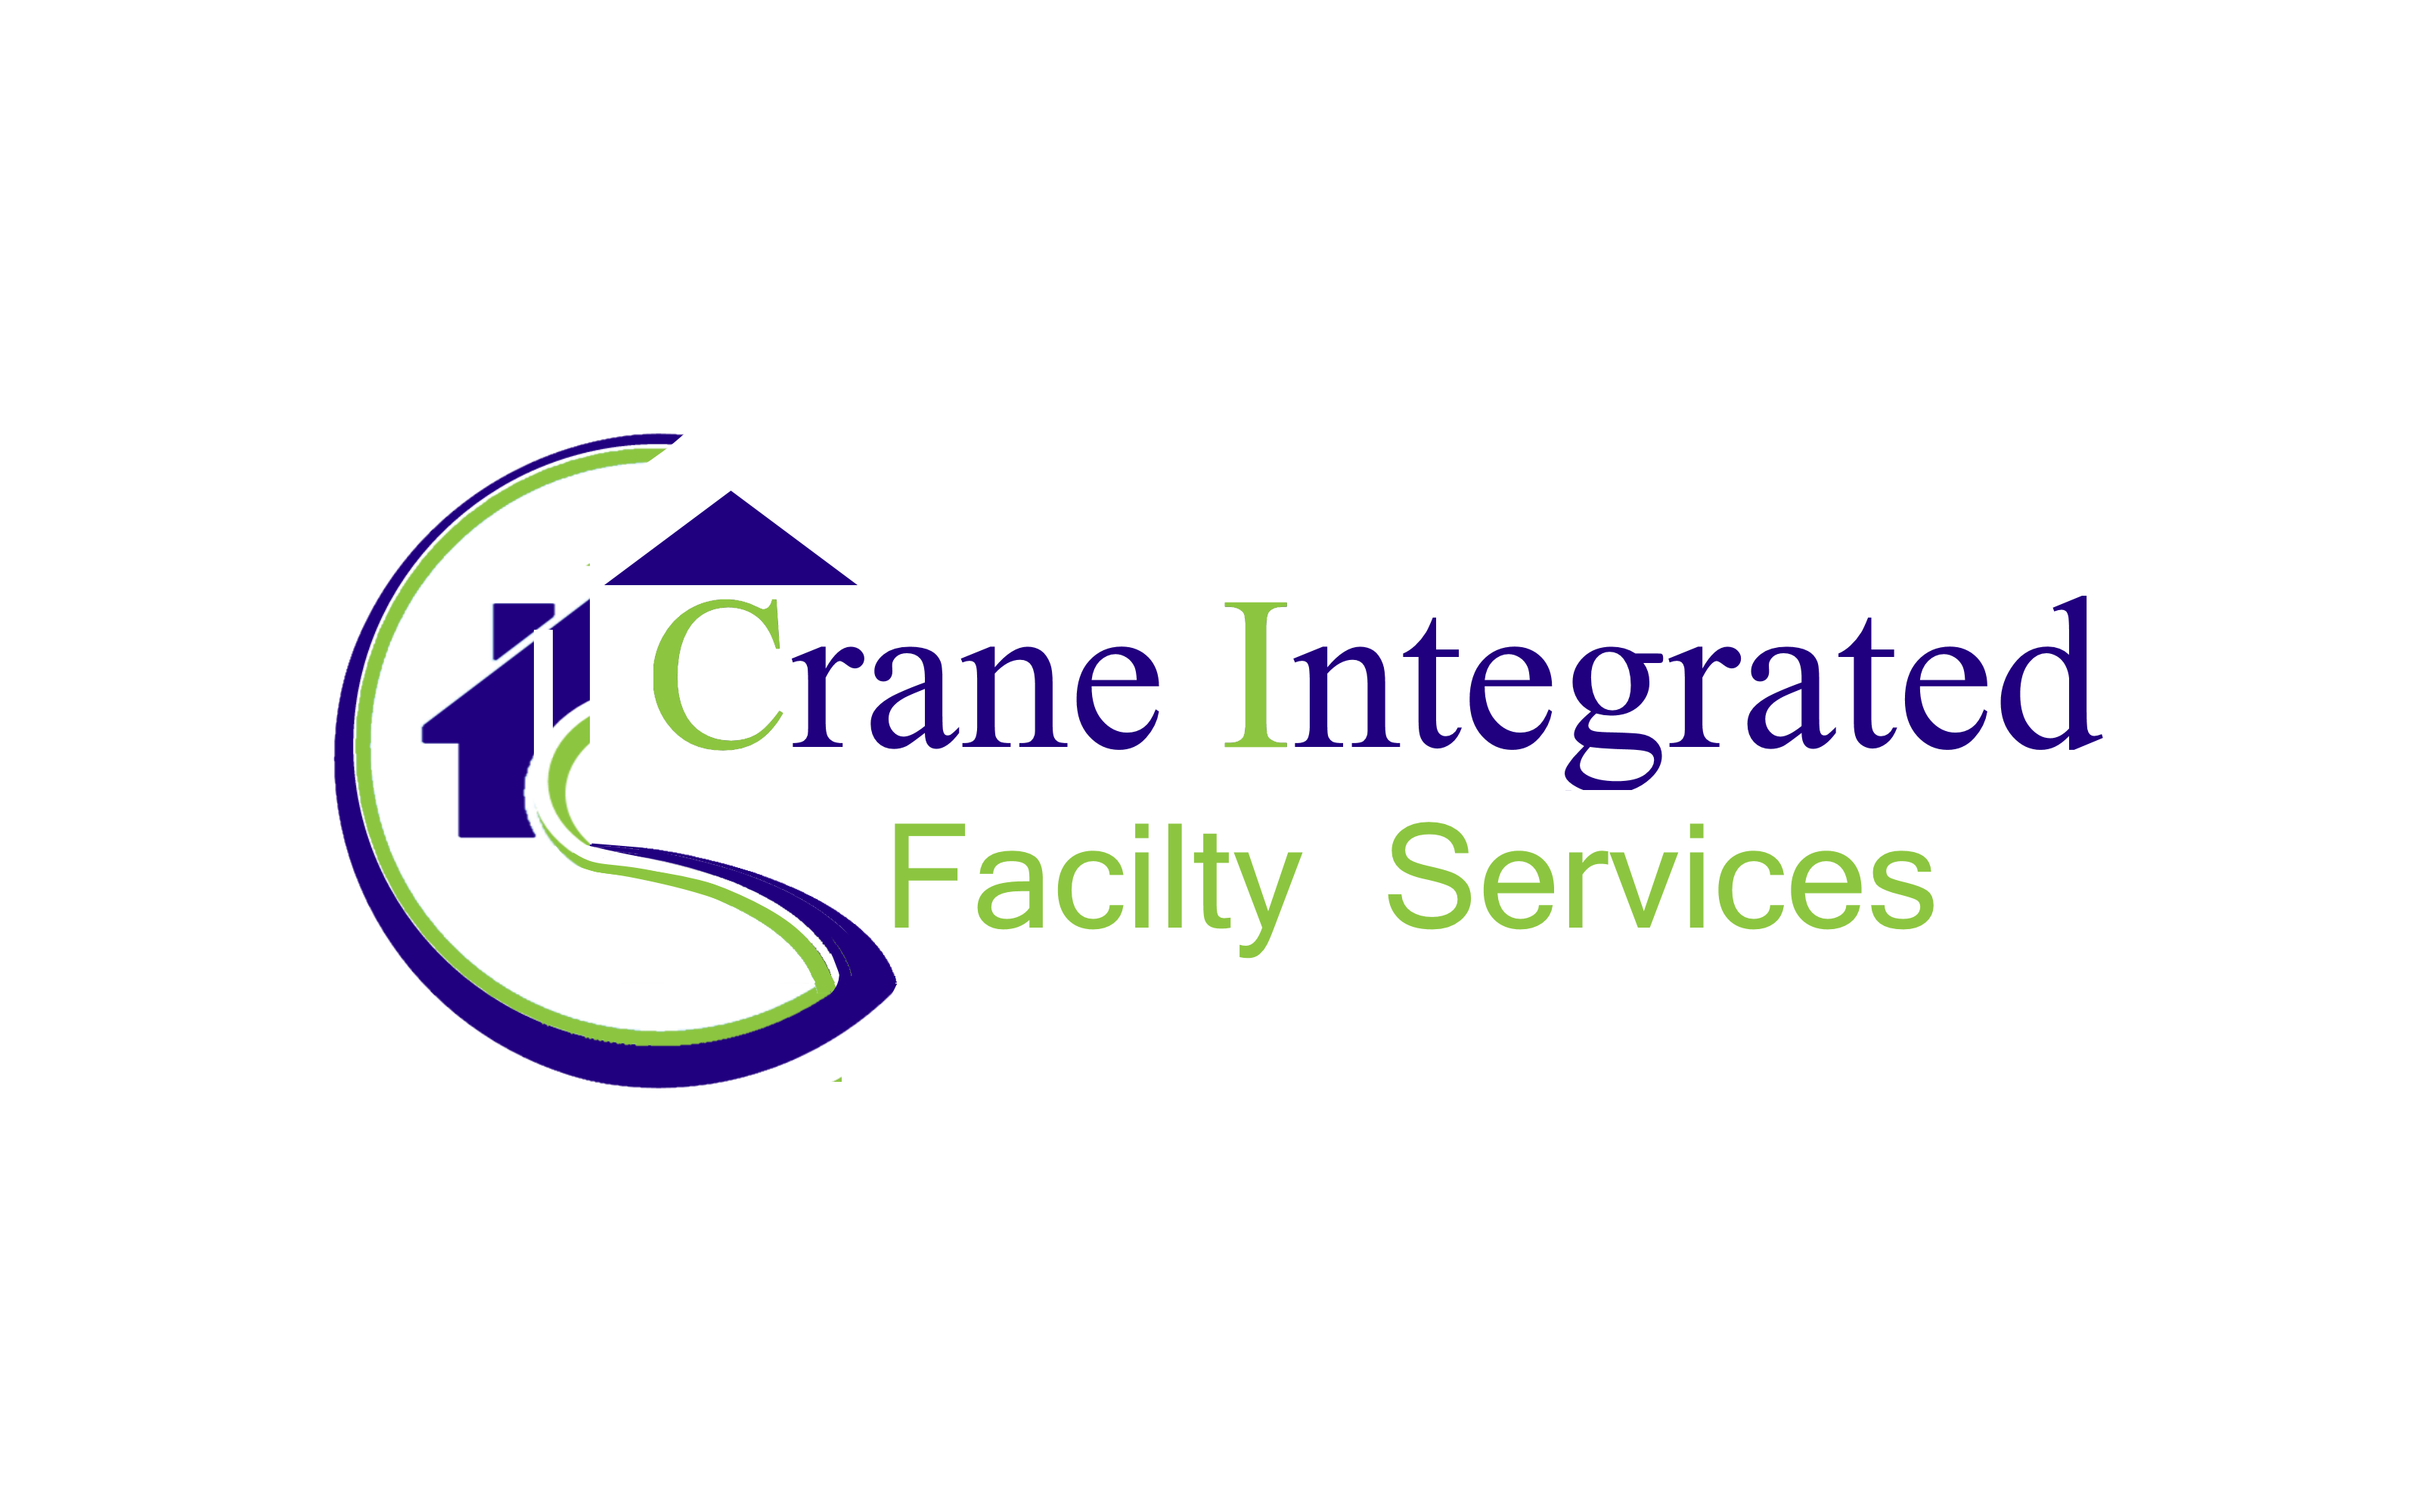 Logo Design by Roberto Bassi - Entry No. 92 in the Logo Design Contest Inspiring Logo Design for Crane Integrated Facility Services.